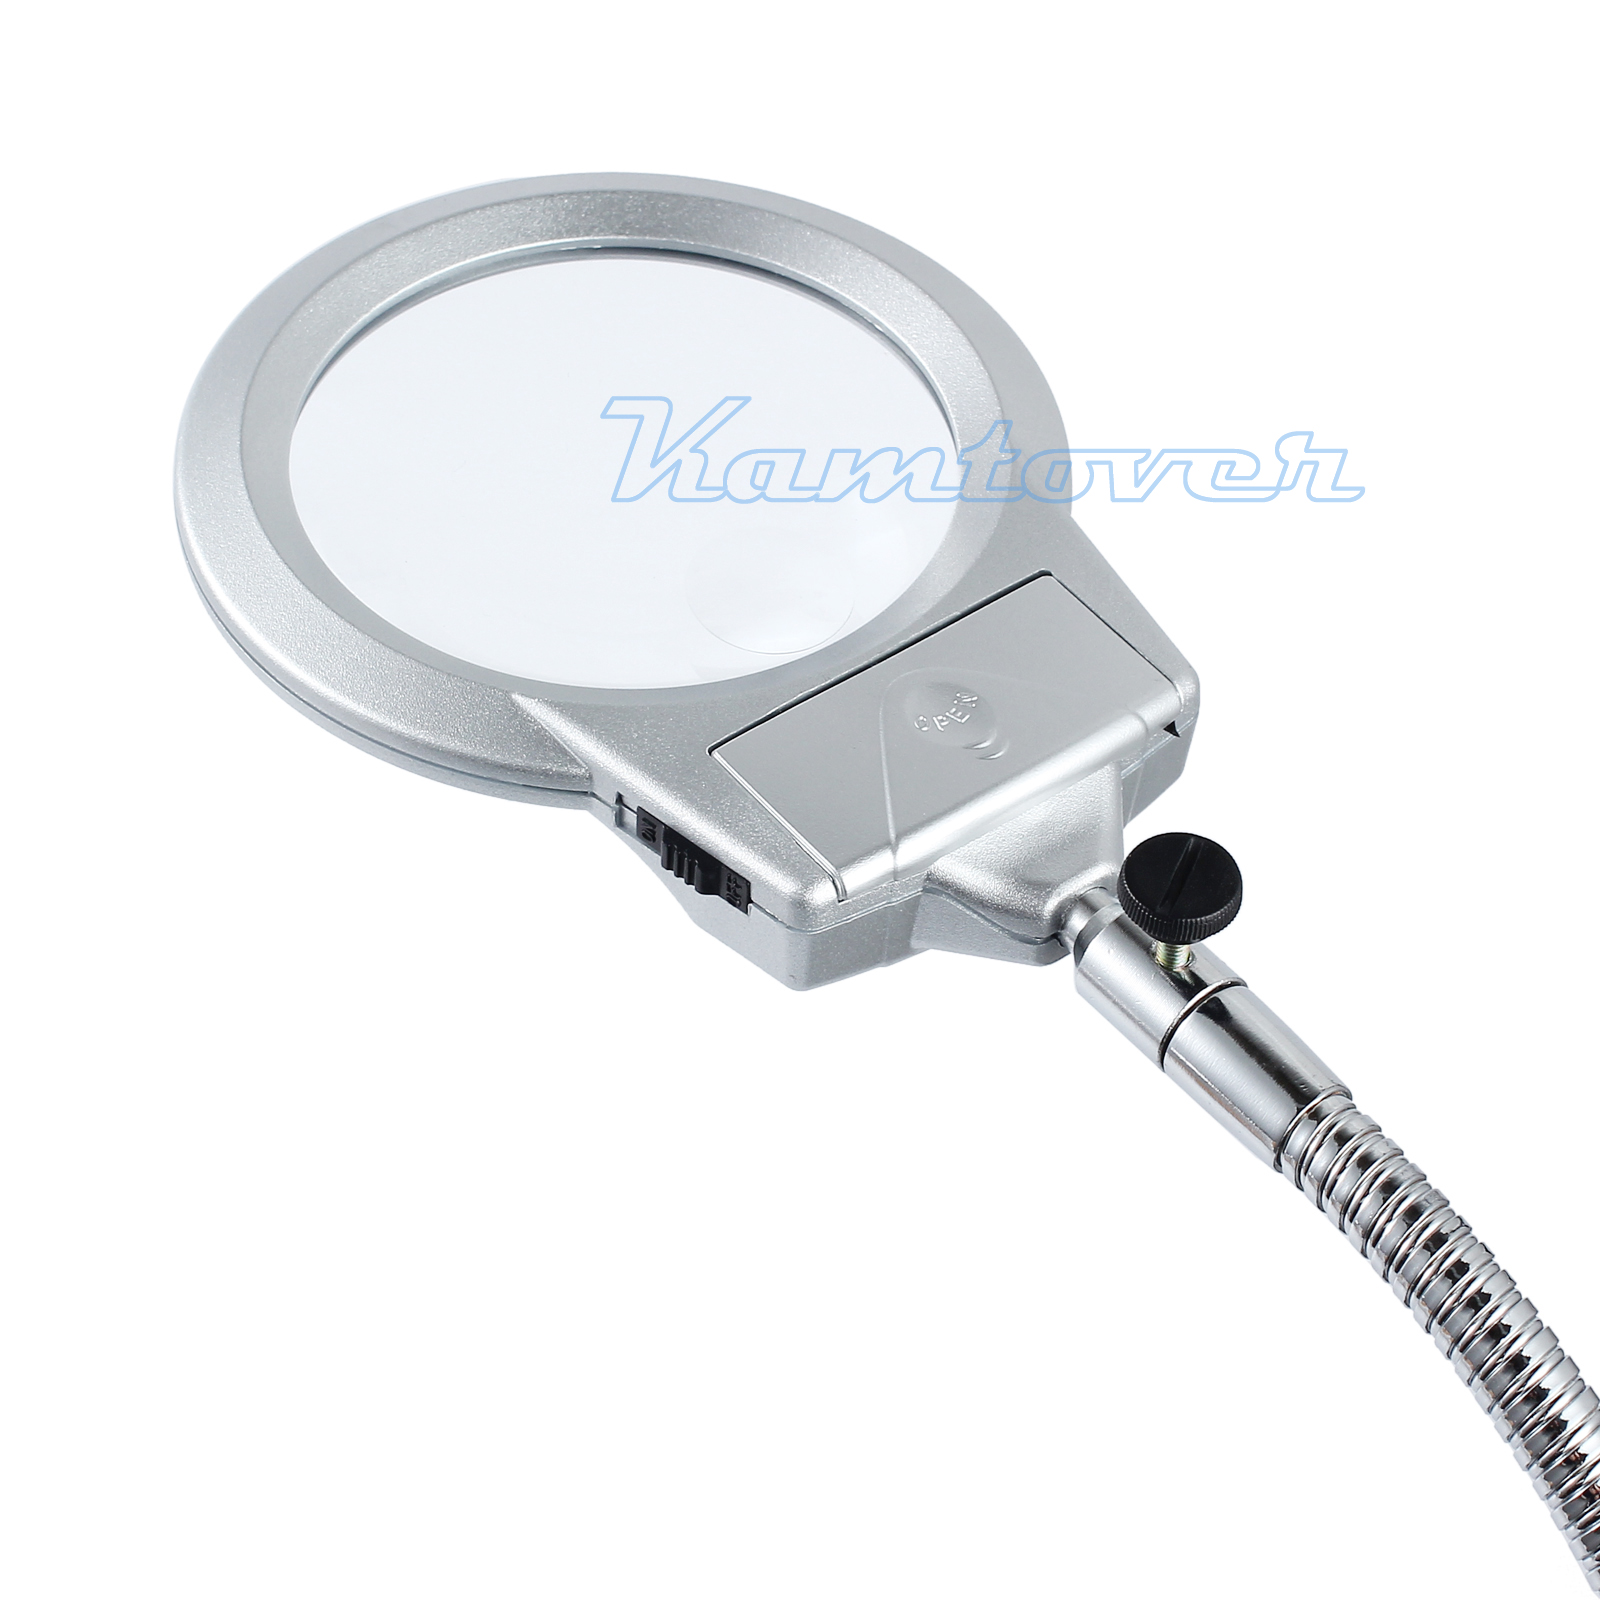 2 led lighted lamp table top desk magnifier magnifying